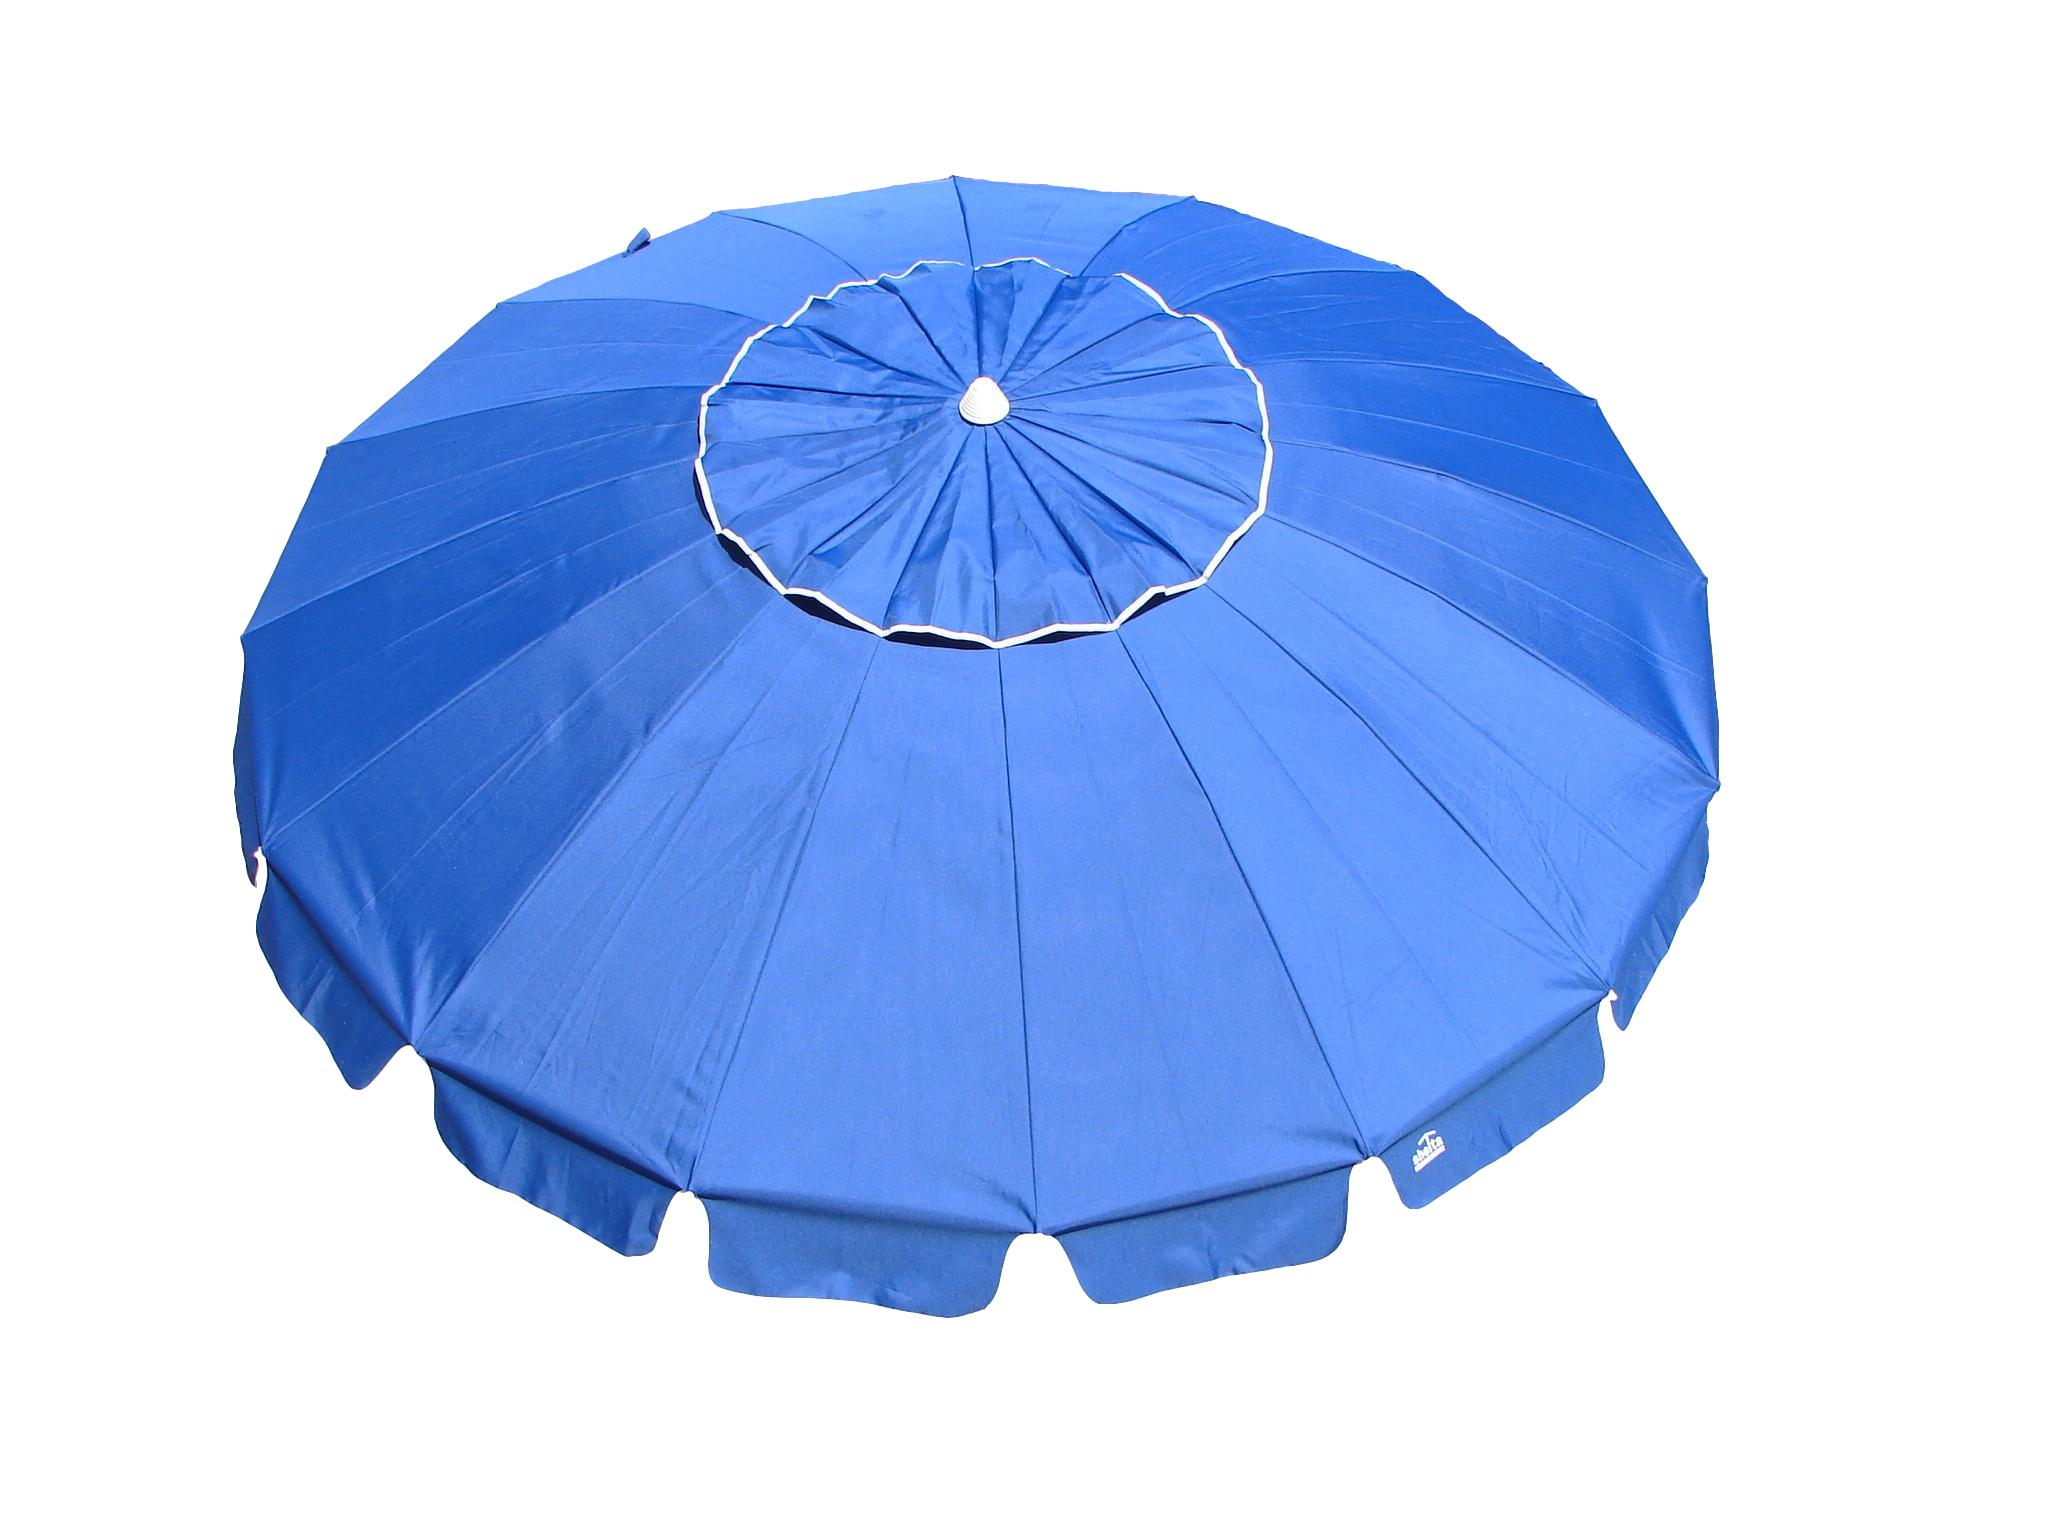 Shelter Manly Royal Blue Beach Umbrella